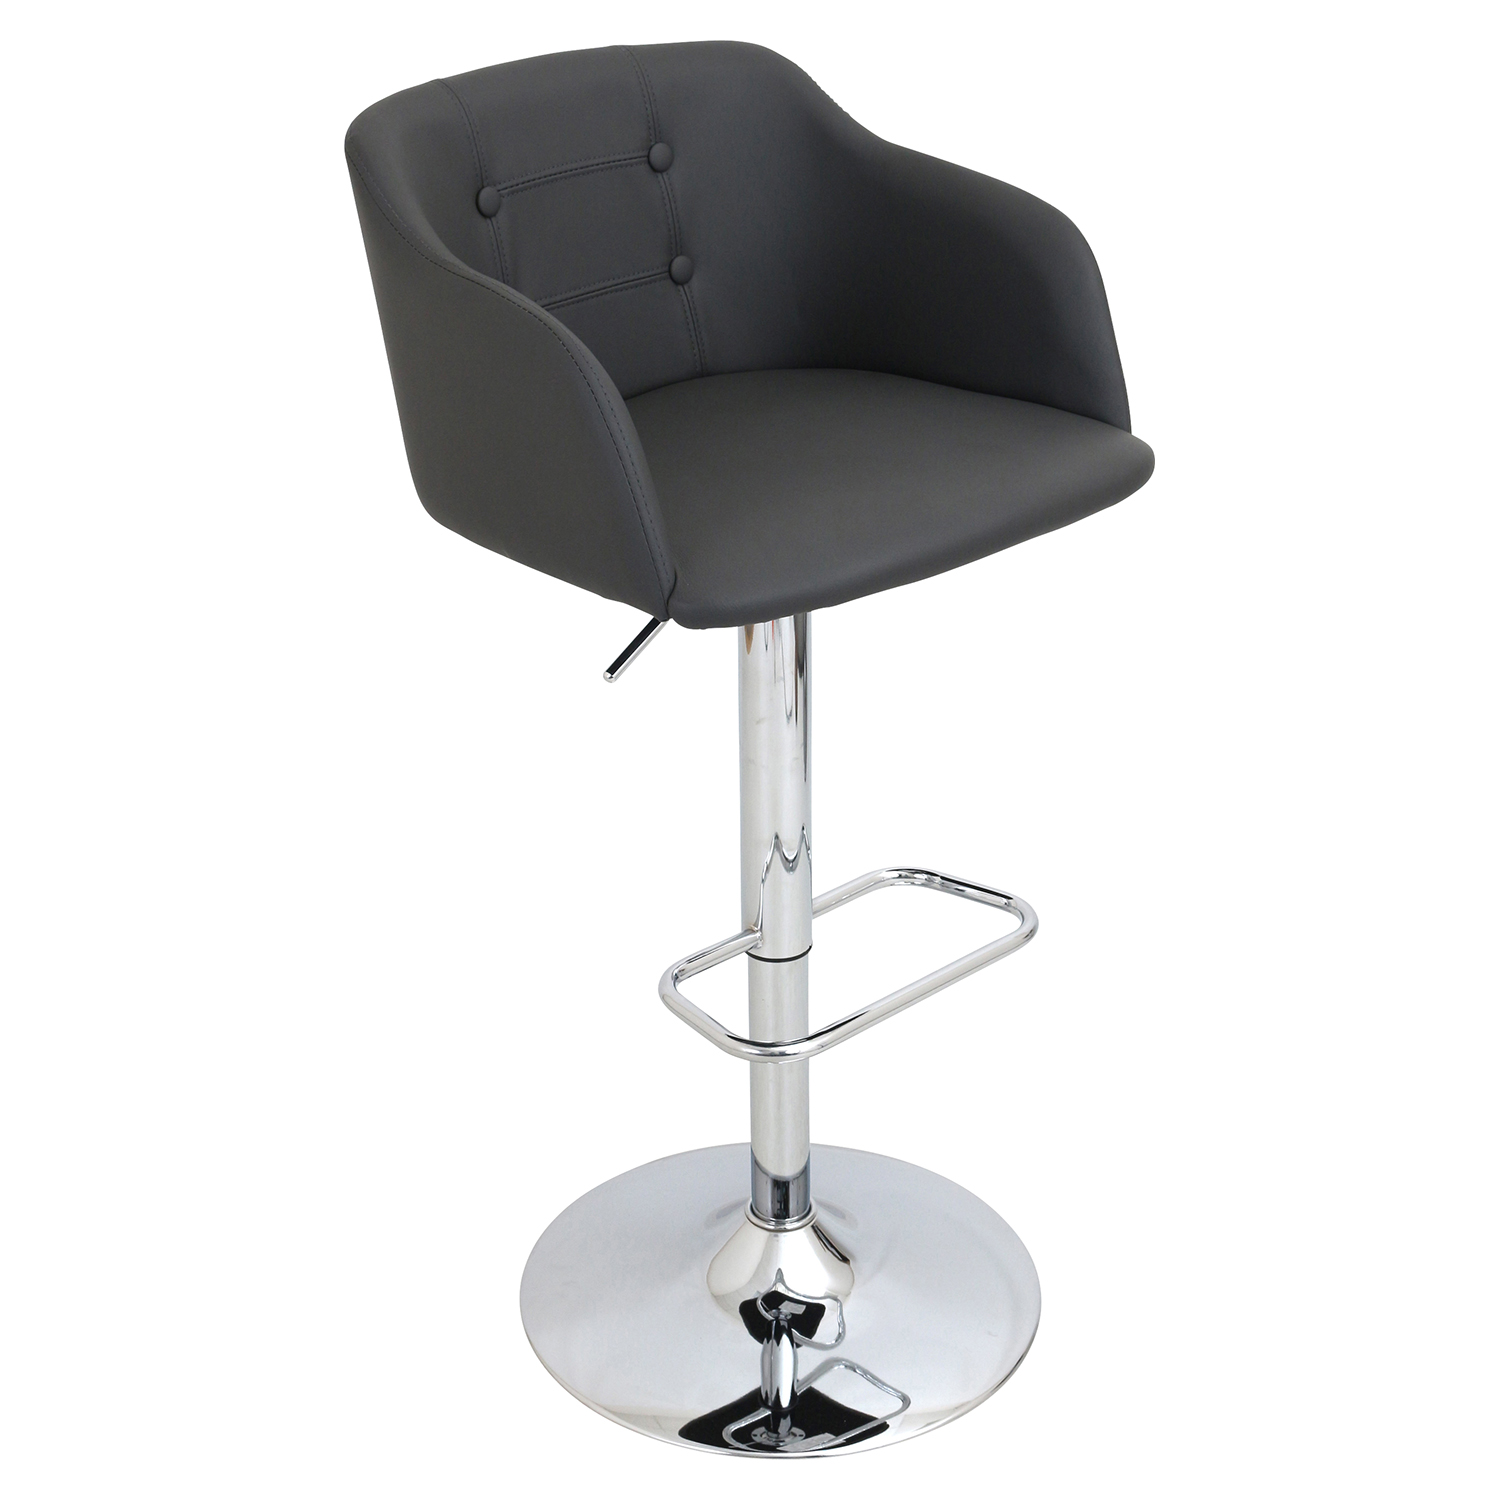 Campania Height Adjustable Barstool - Swivel, Gray